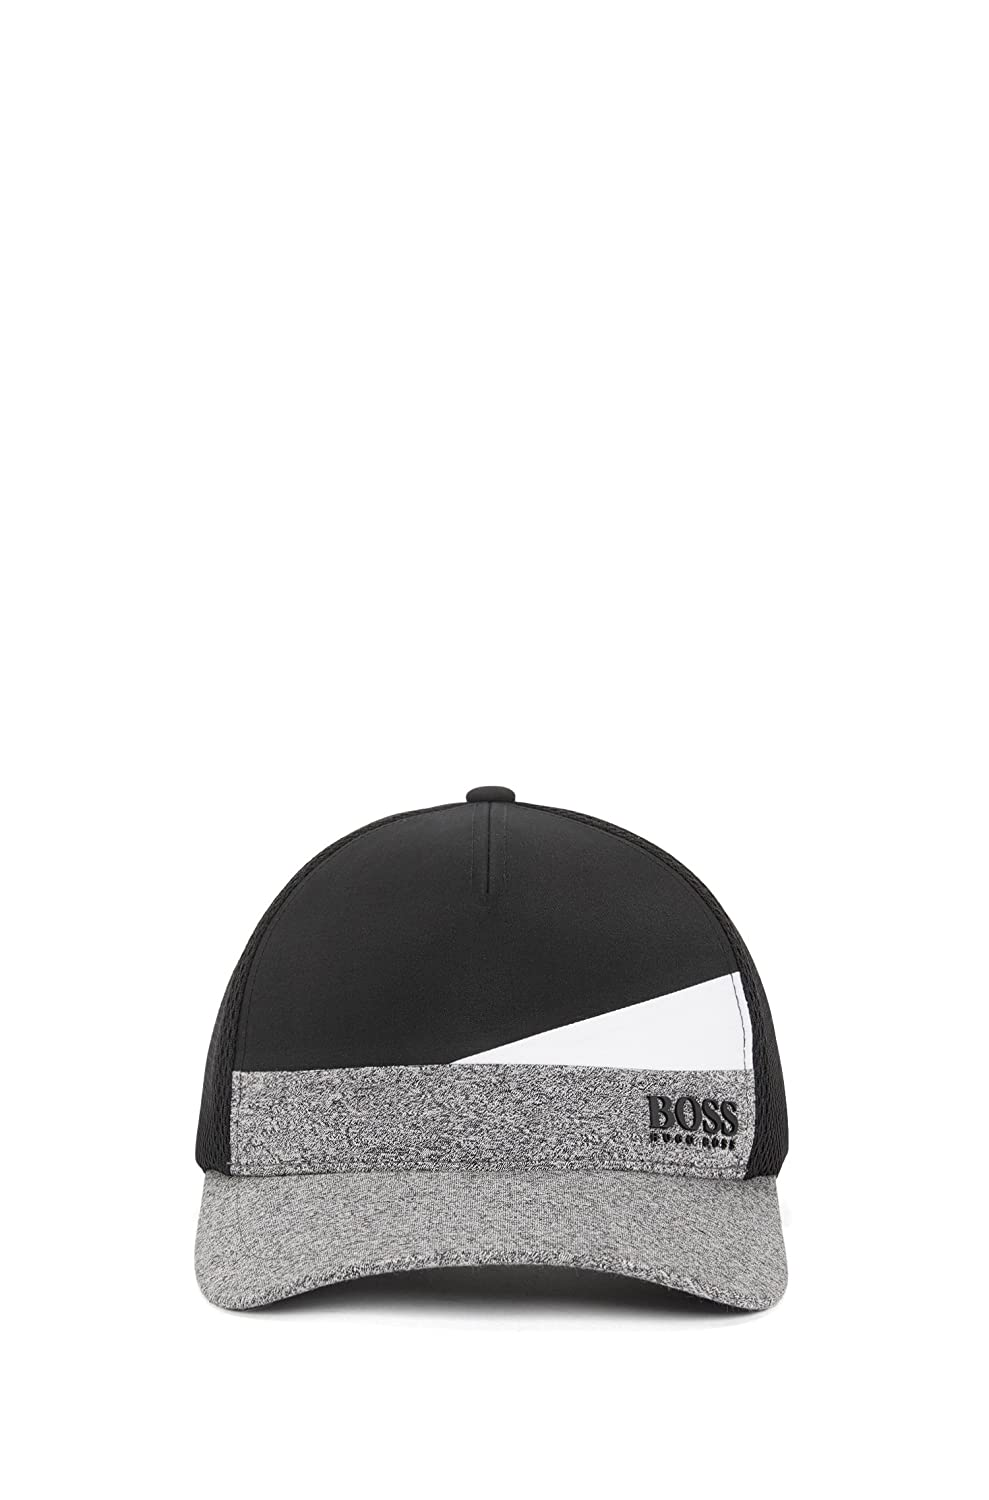 HUGO BOSS cap-iconic Colourblock Gorra béisbol (Negro / gris / blanco): Amazon.es: Ropa y accesorios